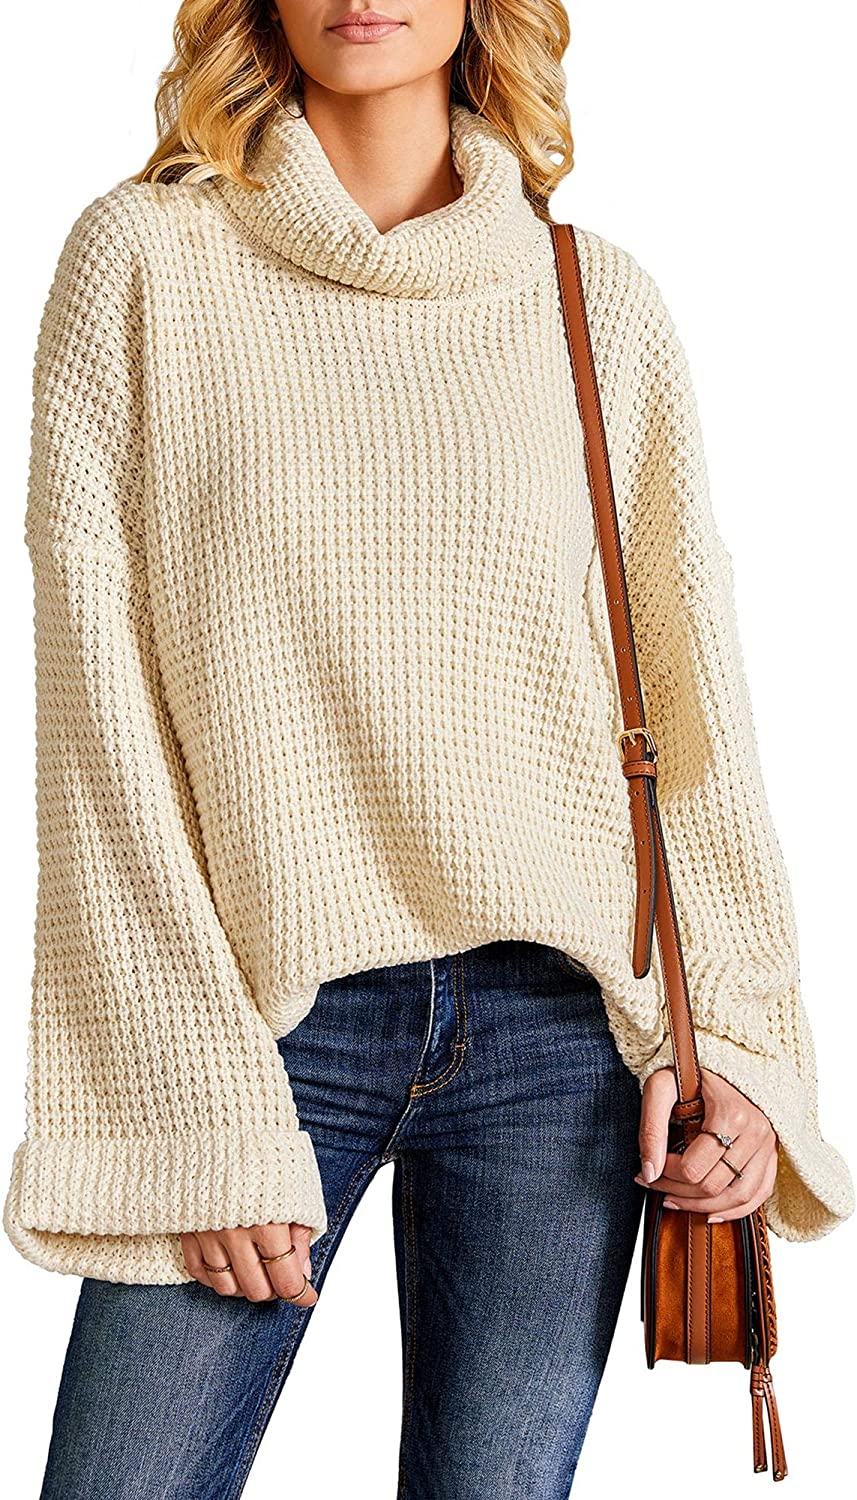 Misassy Womens Turtleneck Oversized Pullover Sweaters Casual Loose Slouchy Bell Sleeve Knitted Jumper Tops